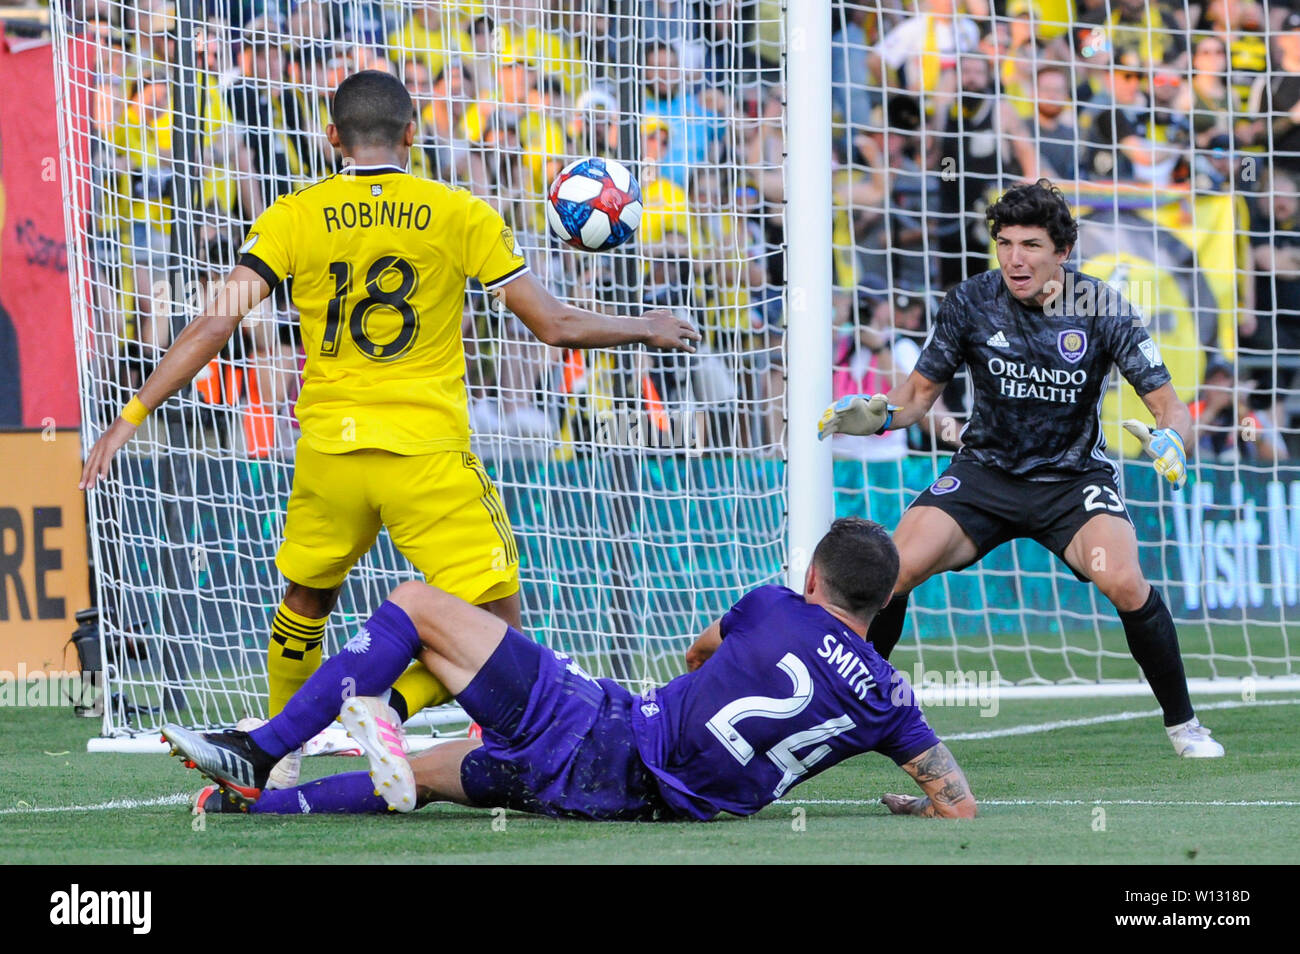 Saturday, June 29, 2019: Columbus Crew SC forward Robinho (18) takes a shot while Orlando City defender Kyle Smith (24) attempt to block the first half of the match between Orlando City and Columbus Crew SC at MAPFRE Stadium, in Columbus OH. Mandatory Photo Credit: Dorn Byg/Cal Sport Media. Orlando City 1 - Columbus Crew SC 0 after the first half - Stock Image